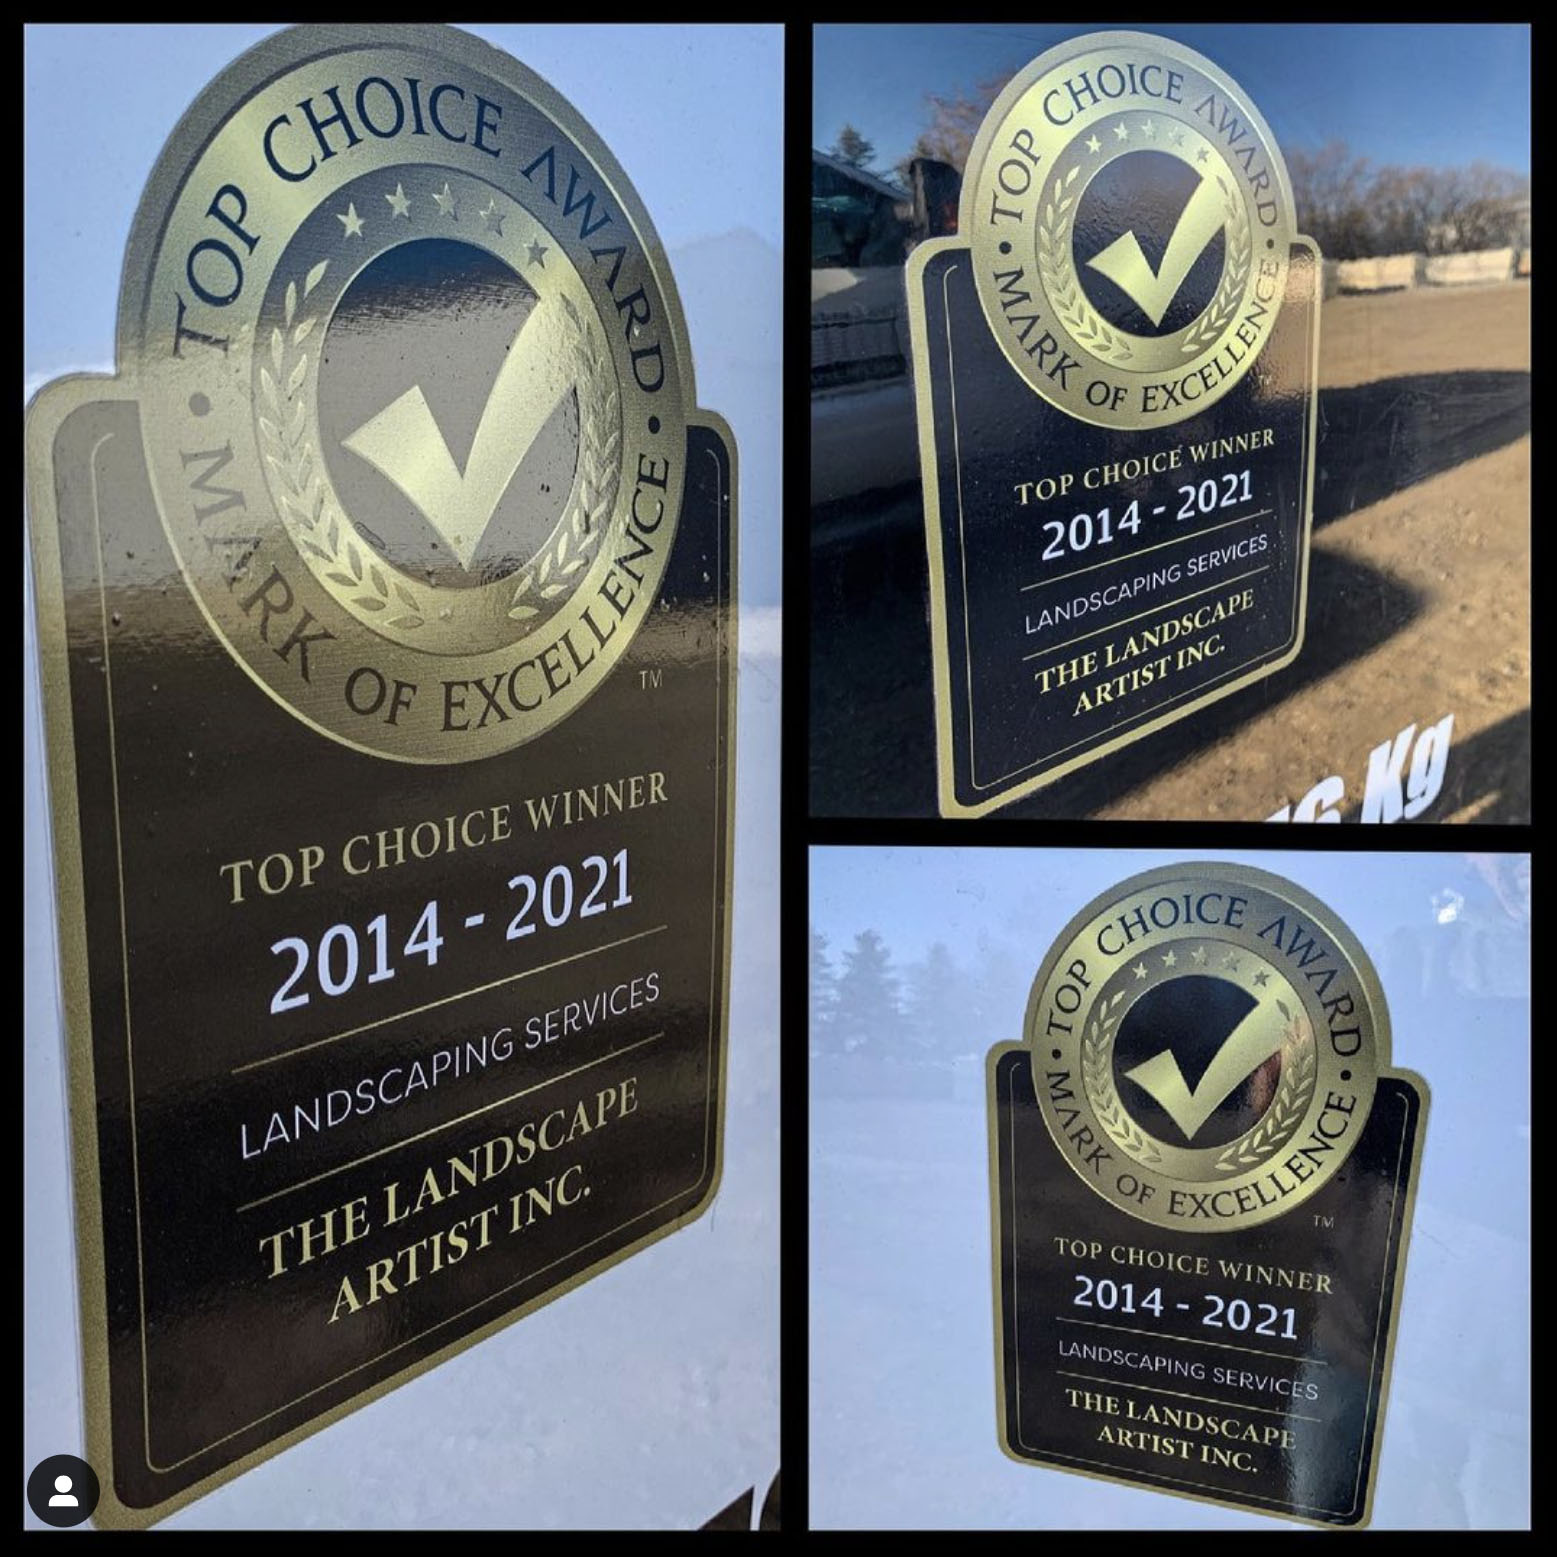 Top Choice Winner for best landscaping services in Calgary